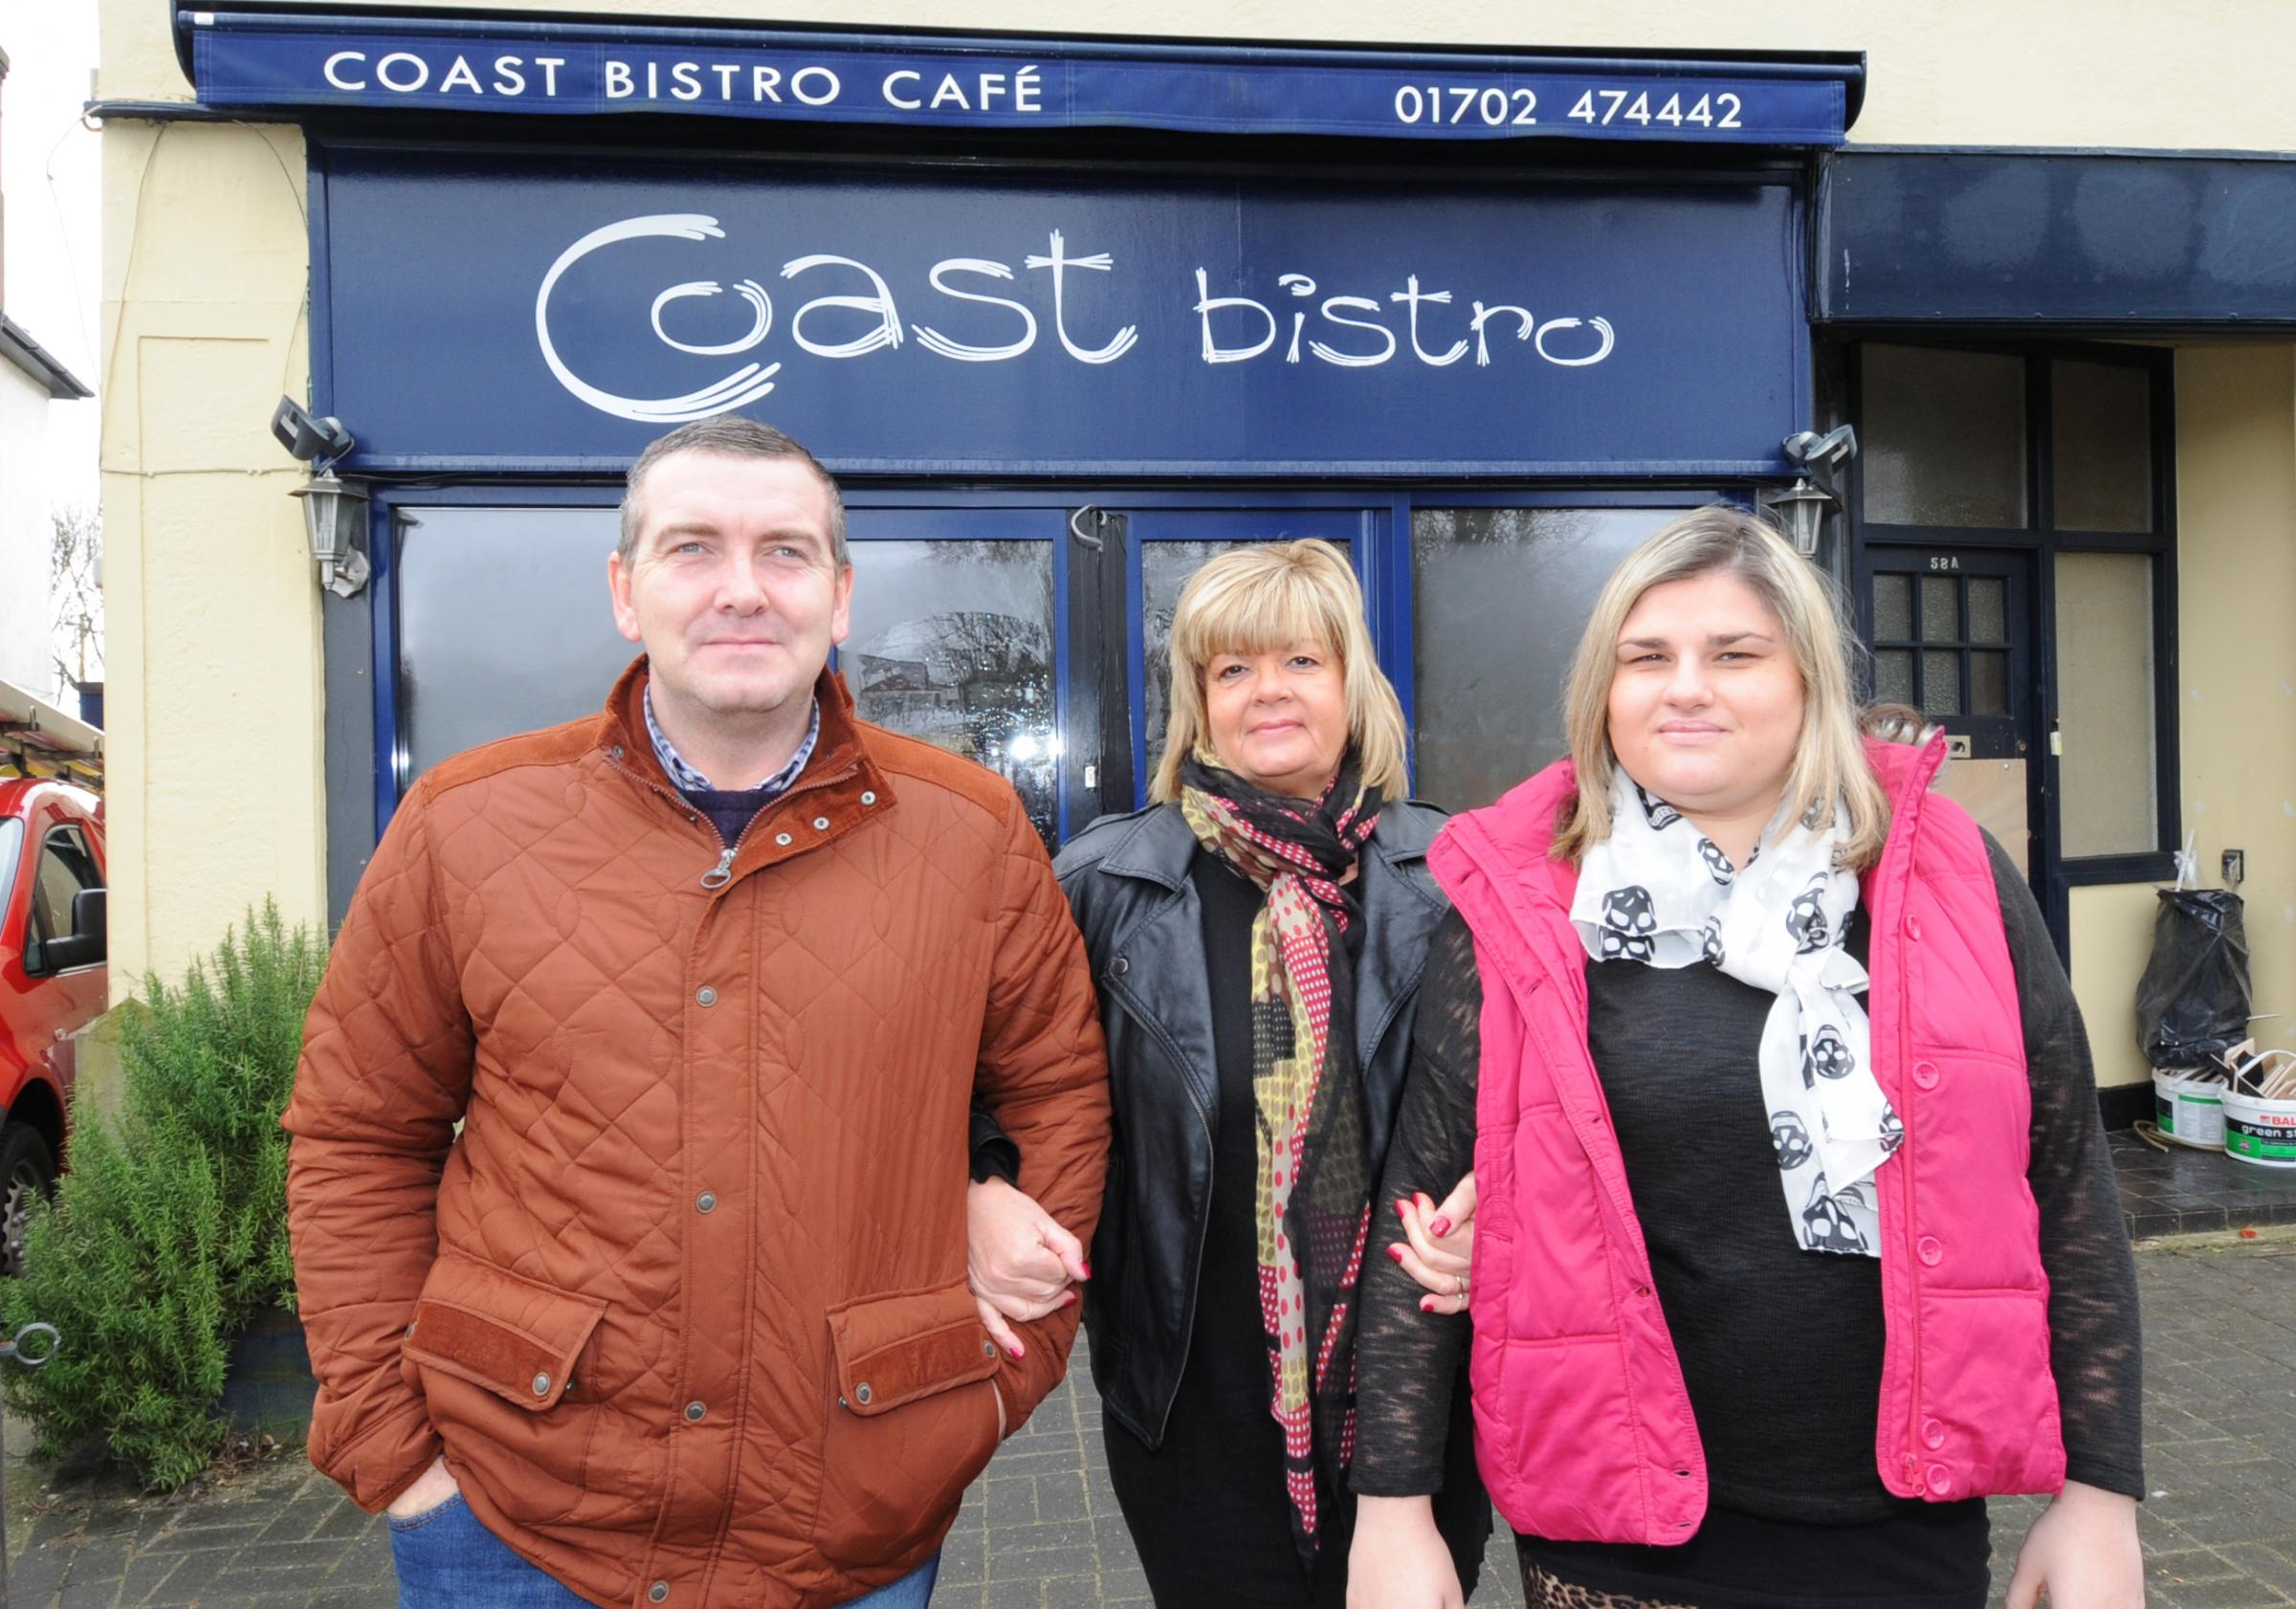 Uphill battle – Coast Bistro owners Darren Payne and Sue Goodman, with Sue's daughter Jo Goodman